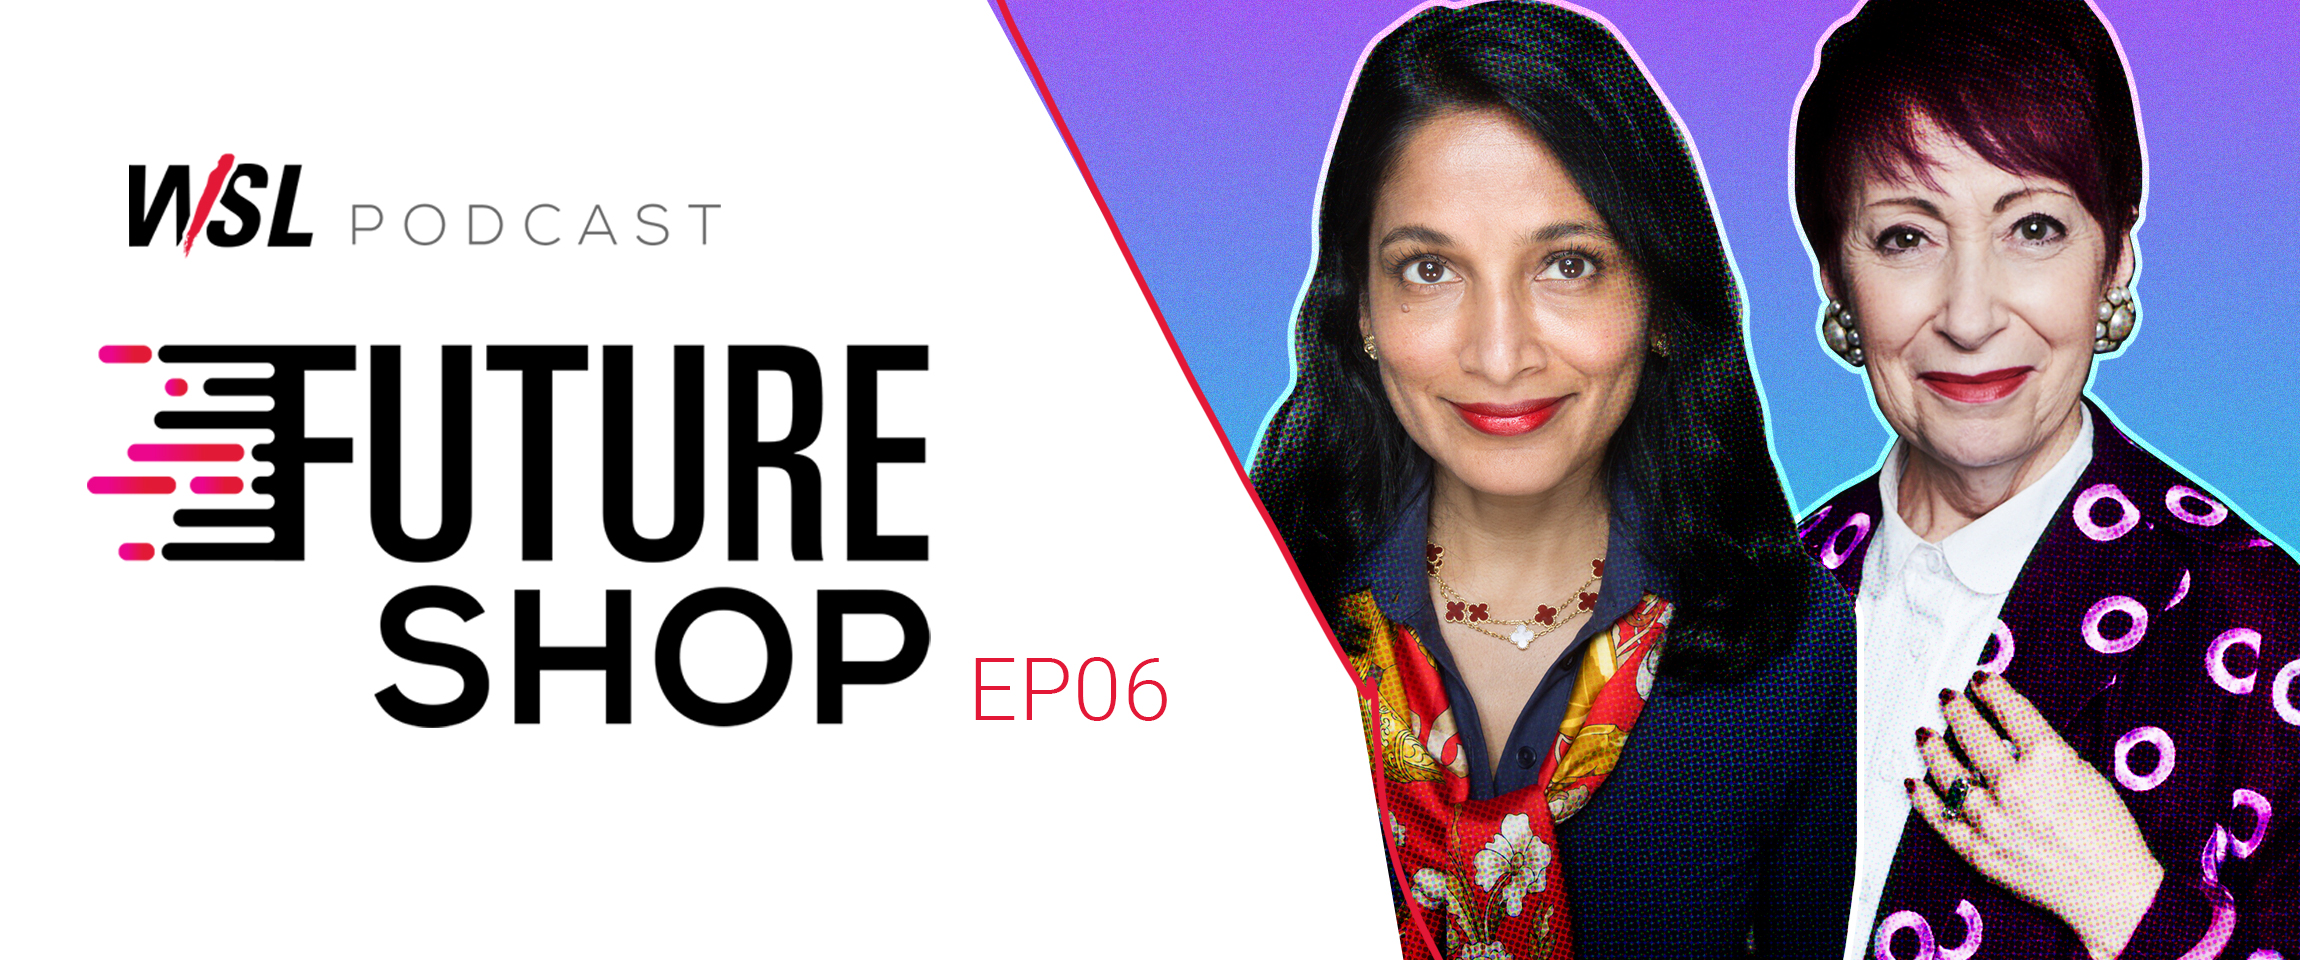 The Power of Retail to Create Calm in Stressful Times - Future Shop Podcast EP06